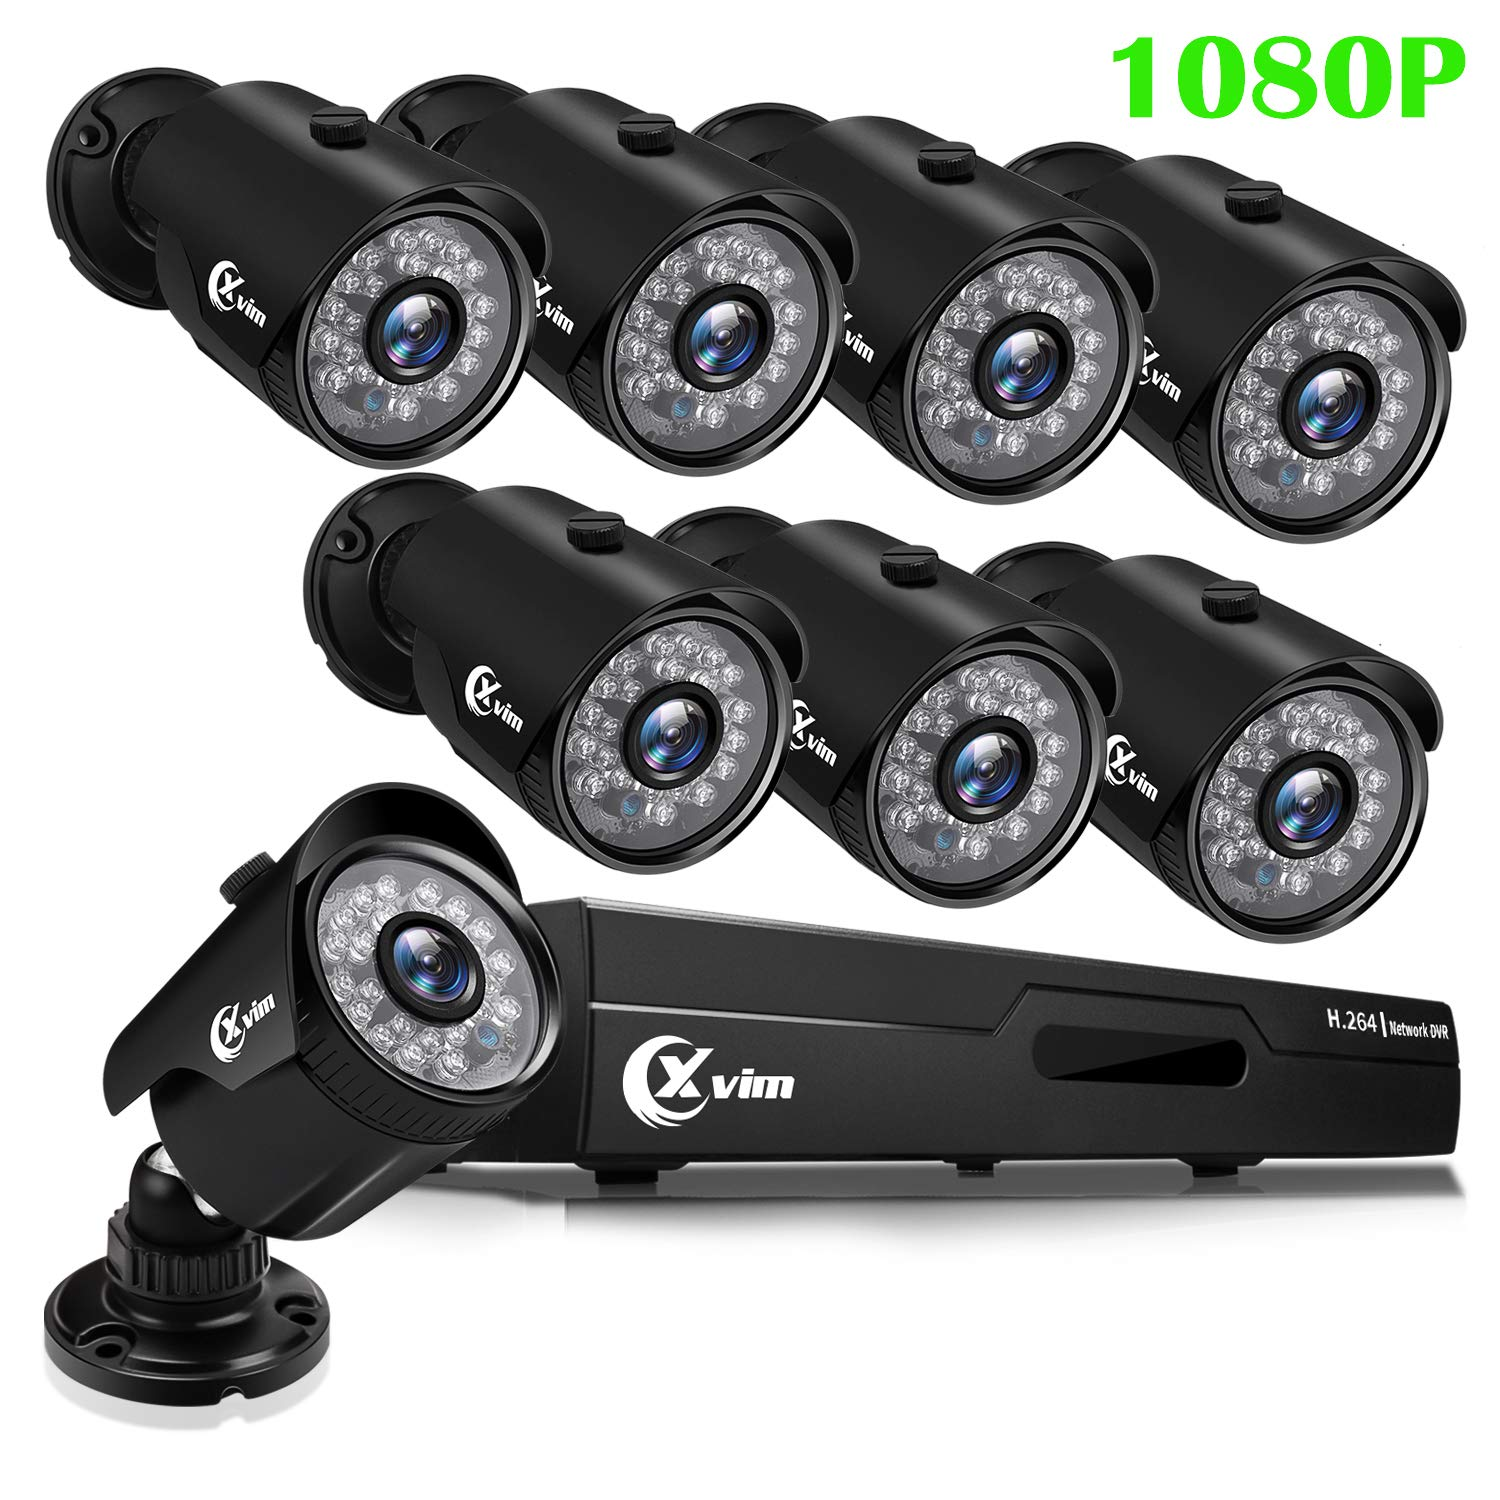 XVIM 1080P H.264 Home Wired Security Cameras System, 8CH 1080P HD DVR 8pcs 1080P 1920TVL Outdoor Indoor Waterproof Surveillance Cameras with Live Viewing 85FT Night Vision(No HDD) by X-VIM